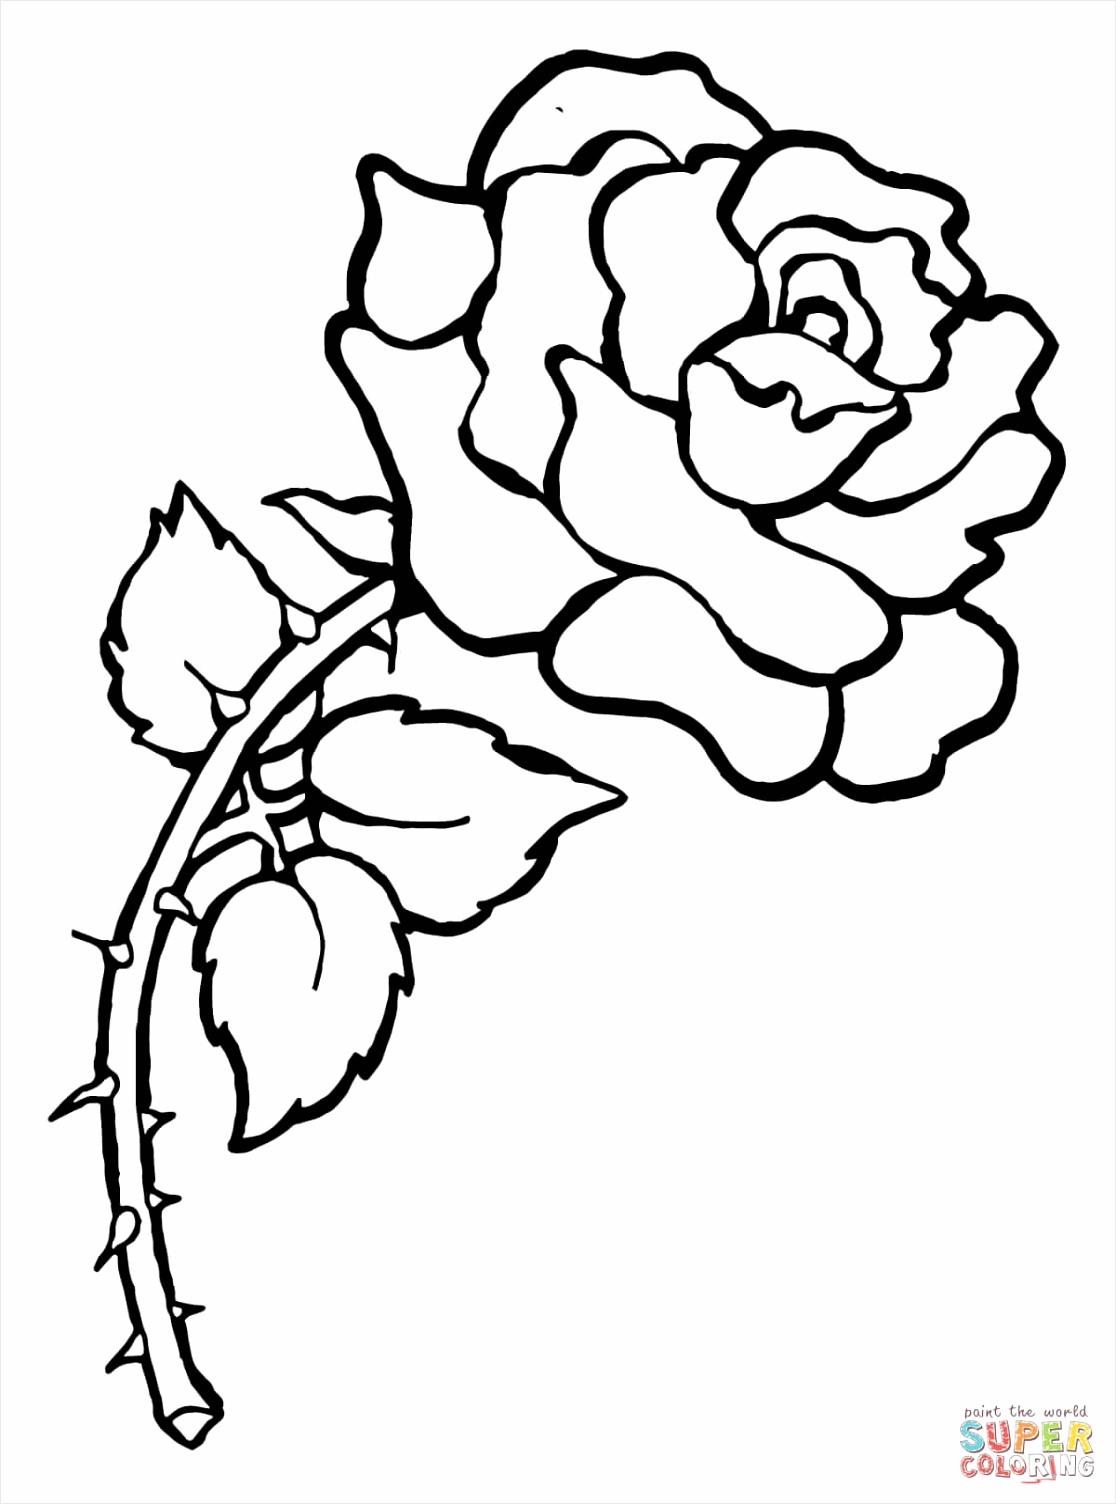 rose with thorns coloring page rreya